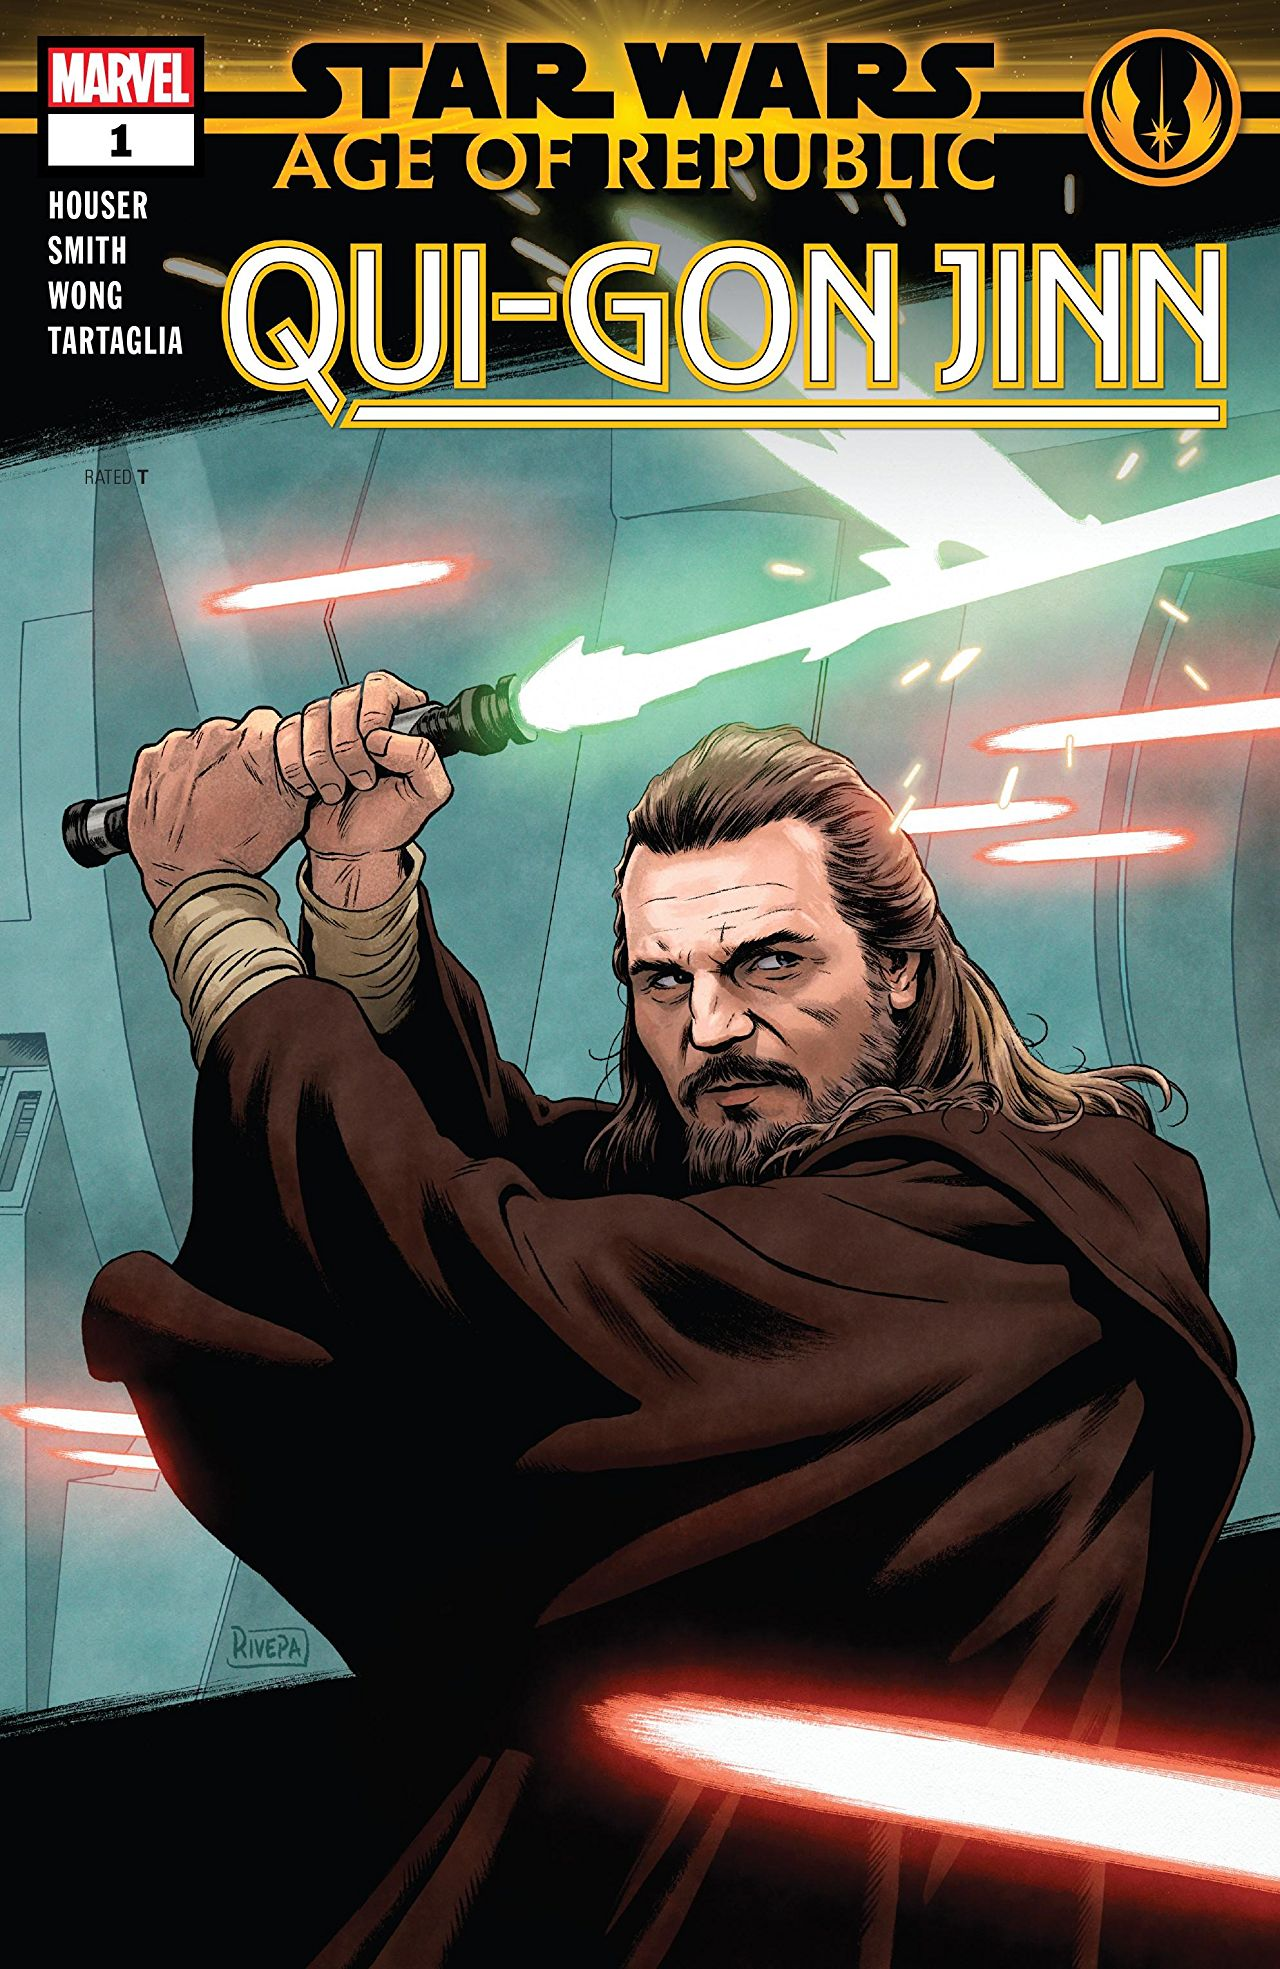 Star Wars: Age of Republic: Qui-Gon Jinn #1 review: A detailed study of a pivotal yet unexplored character